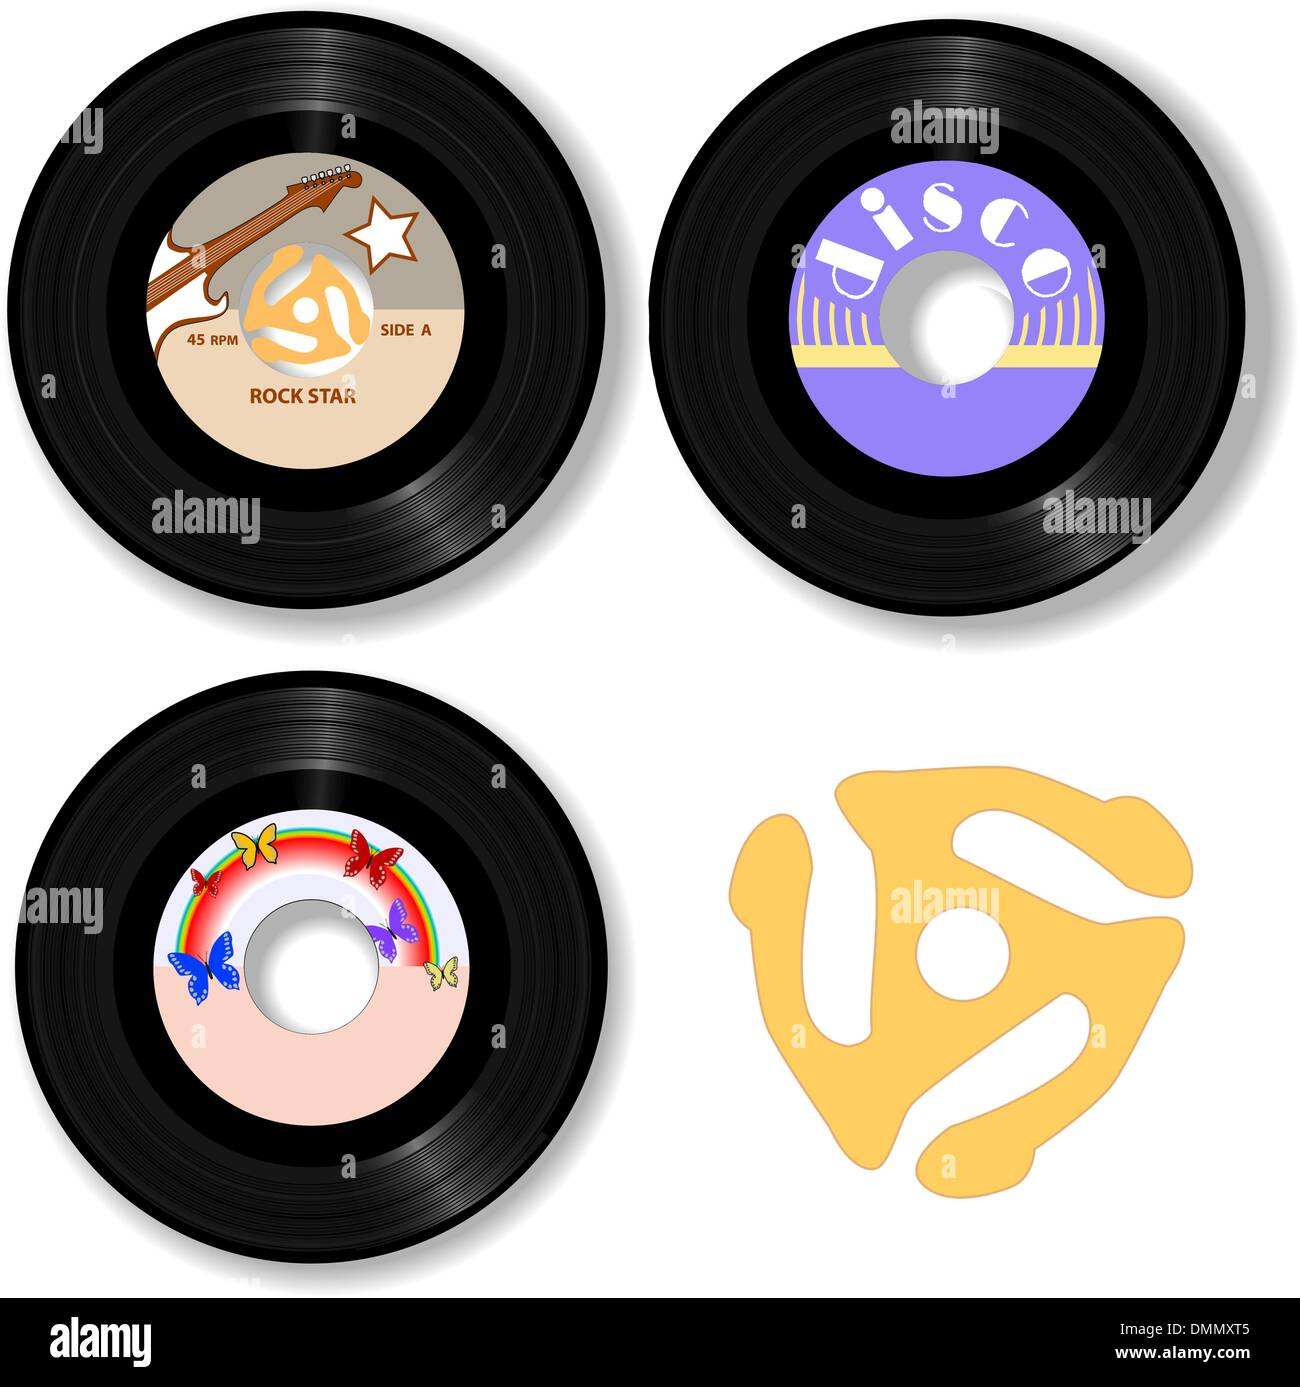 Retro 45 RPM Records & Spindle Adapter - Stock Image